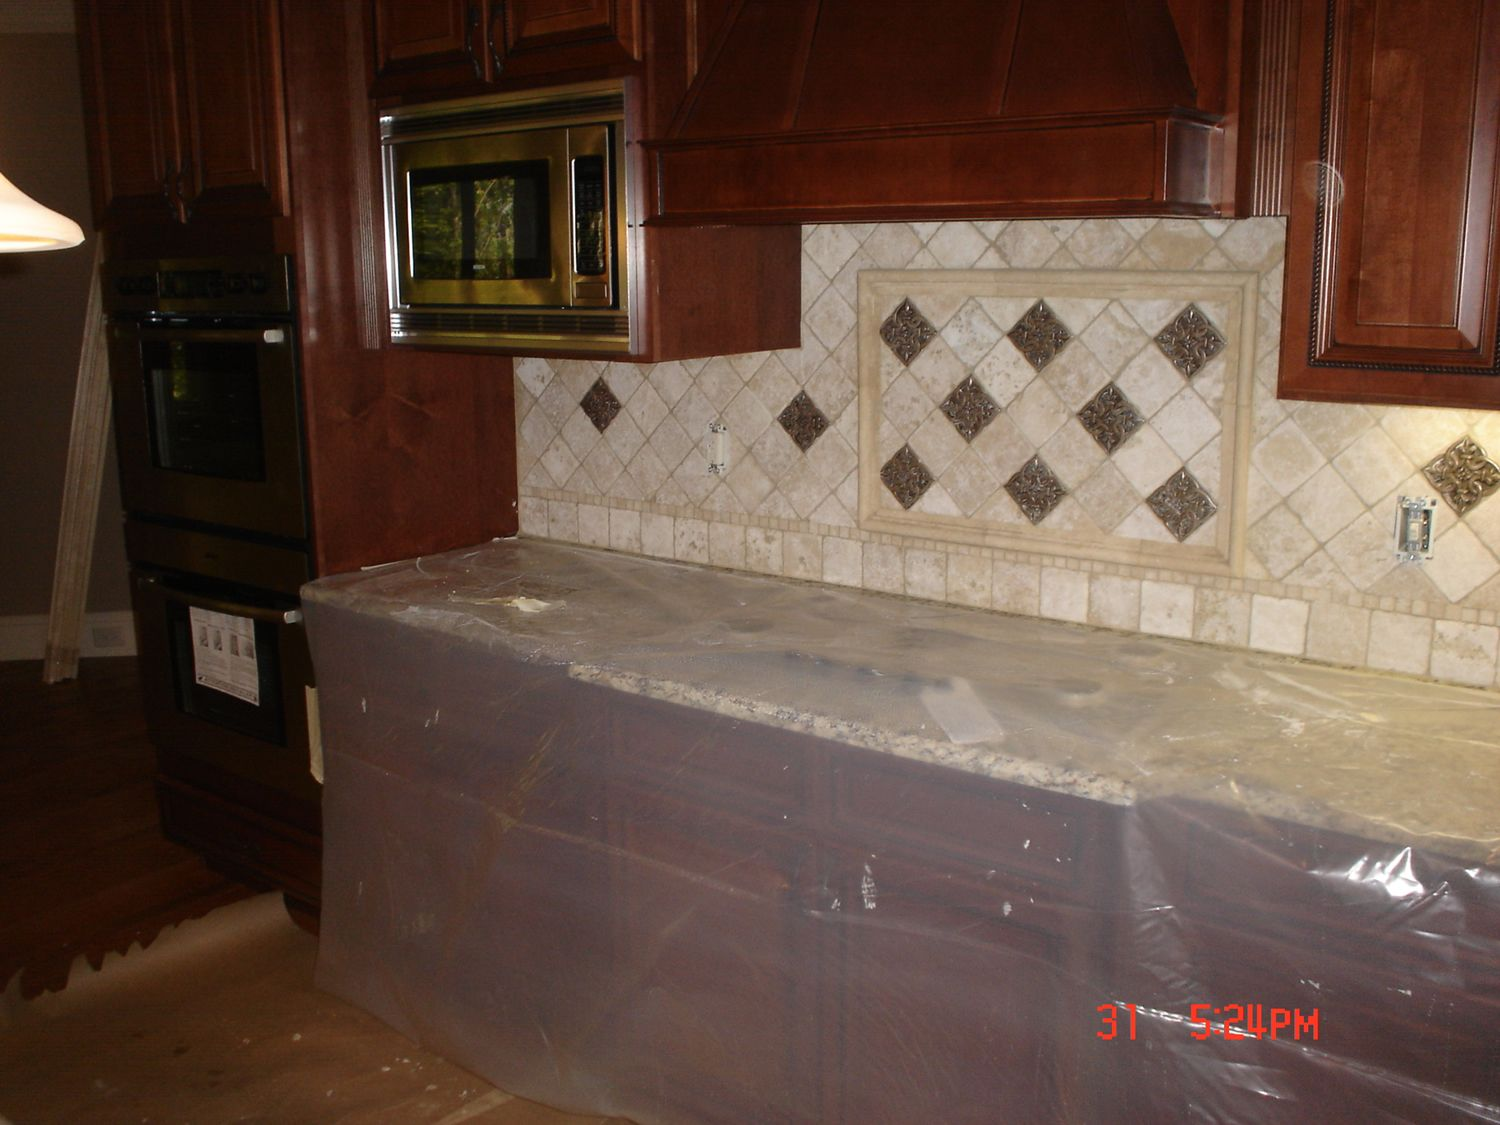 Kitchen travertine tile backsplash ideas kitchen tile backsplash installation in atlanta ga Tile backsplash ideas for kitchen